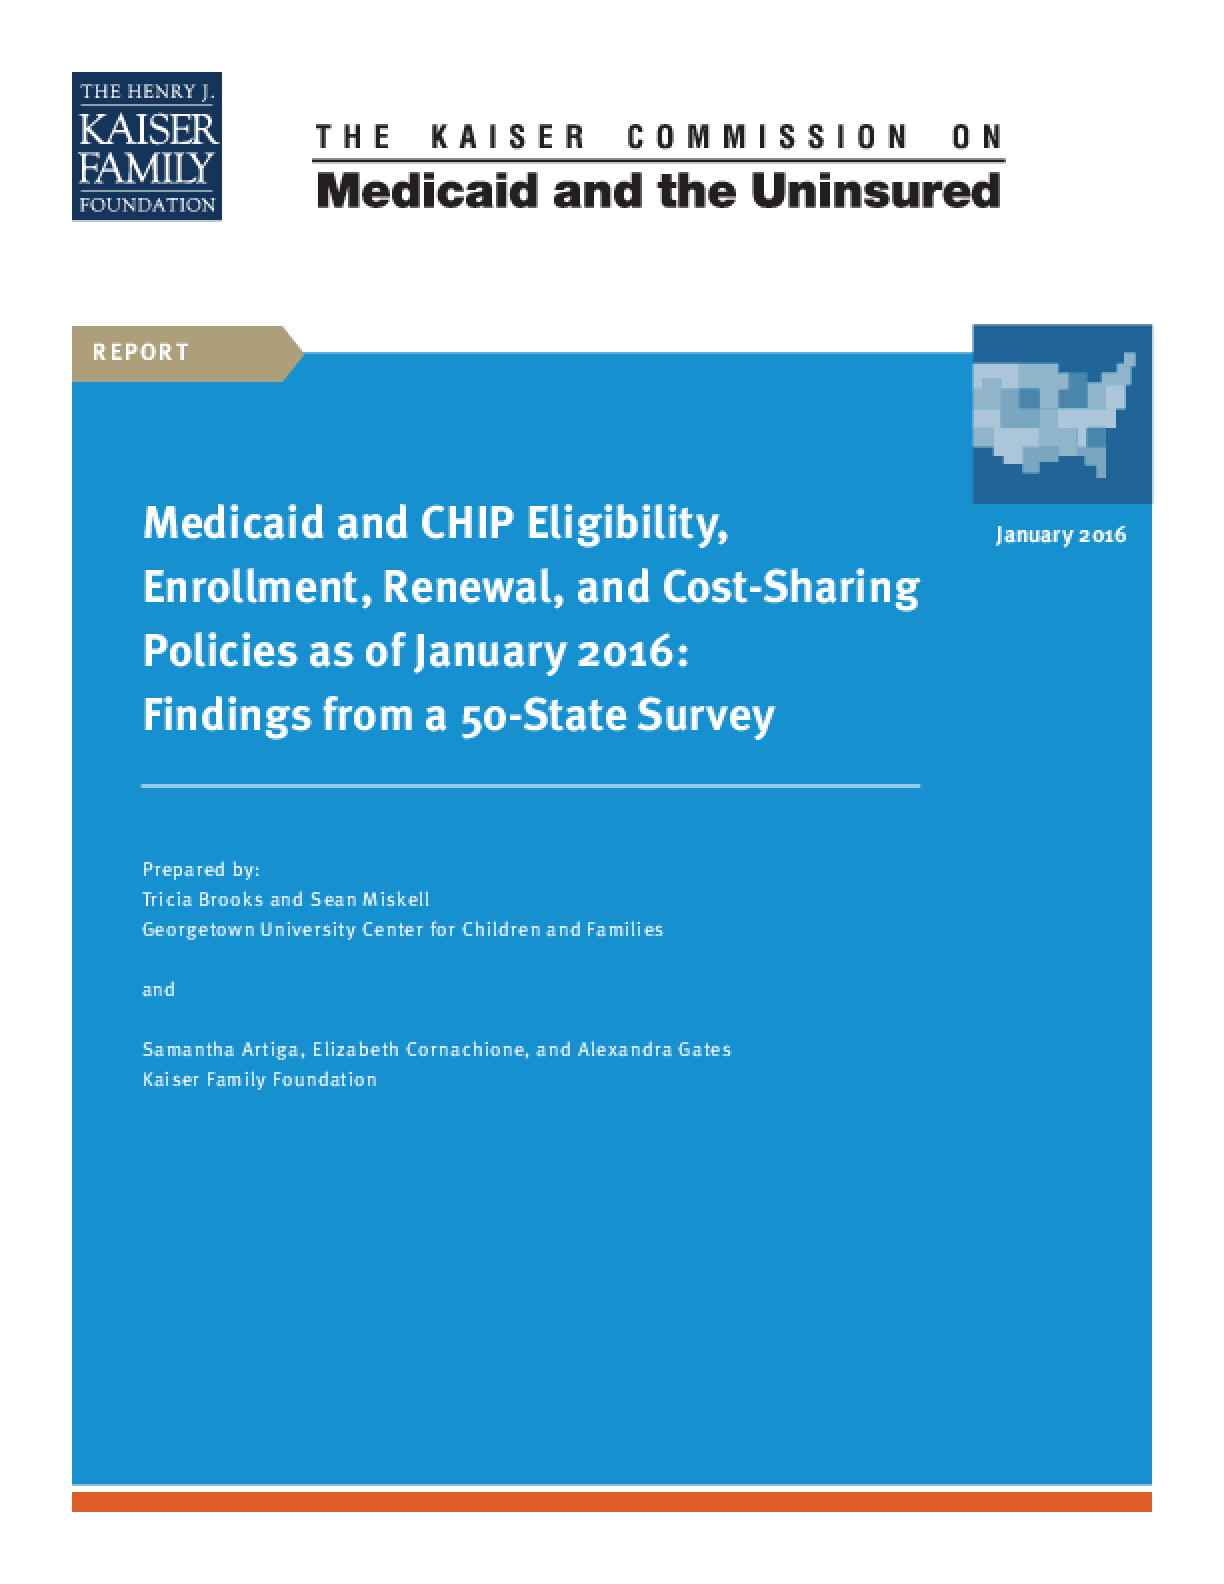 Medicaid and CHIP Eligibility, Enrollment, Renewal, and Cost-Sharing Policies as of January 2016: Findings from a 50-State Survey